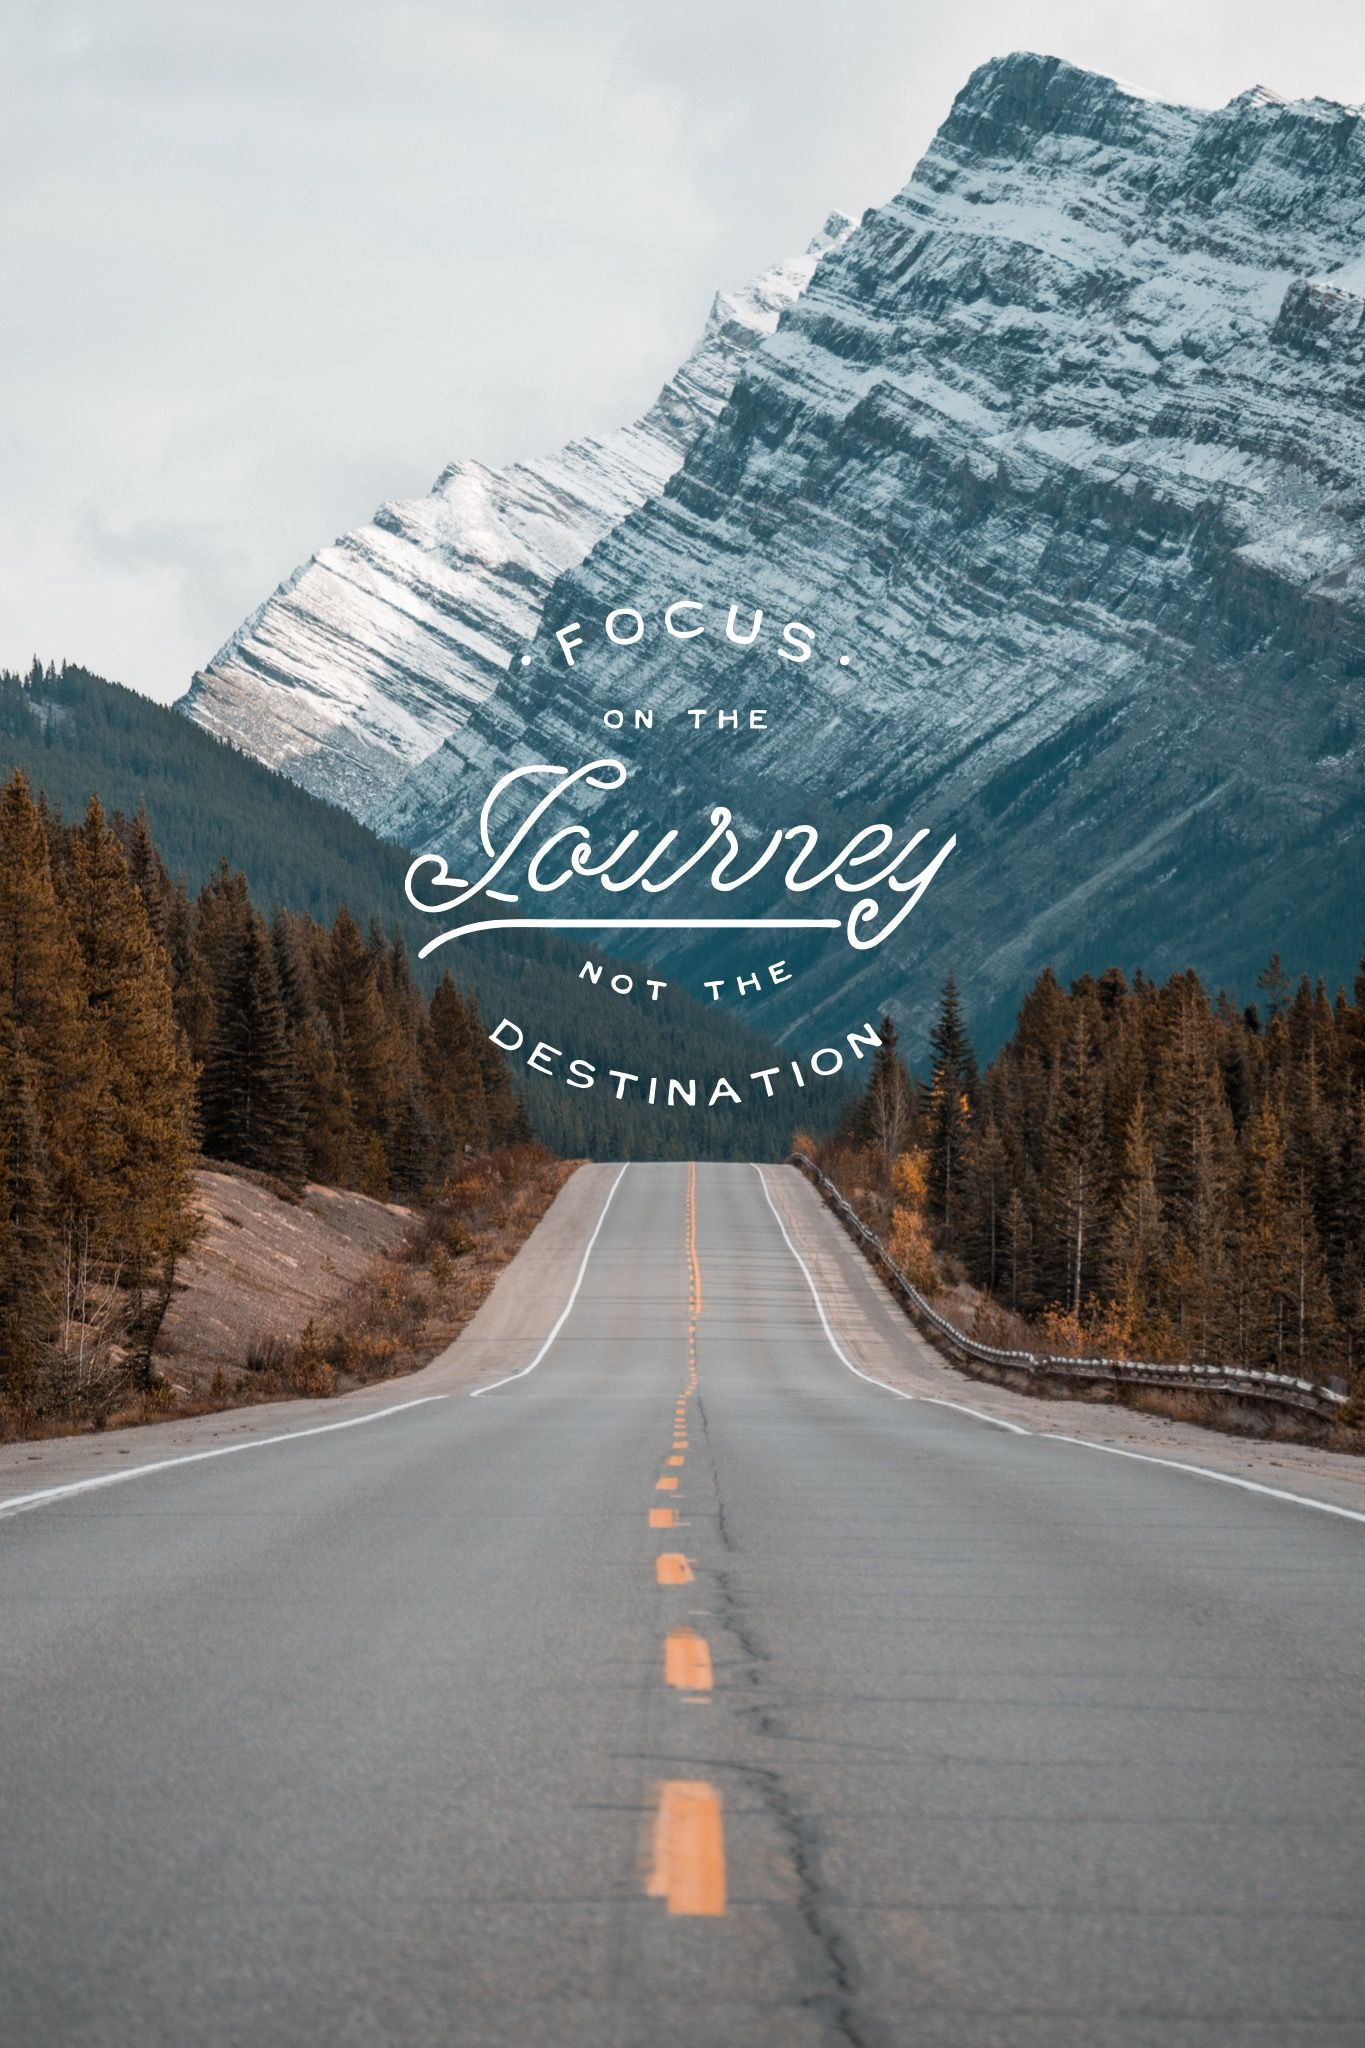 Download Wise Quotes Wallpapers Focus On The Journey Not The Destination Collect And Edit